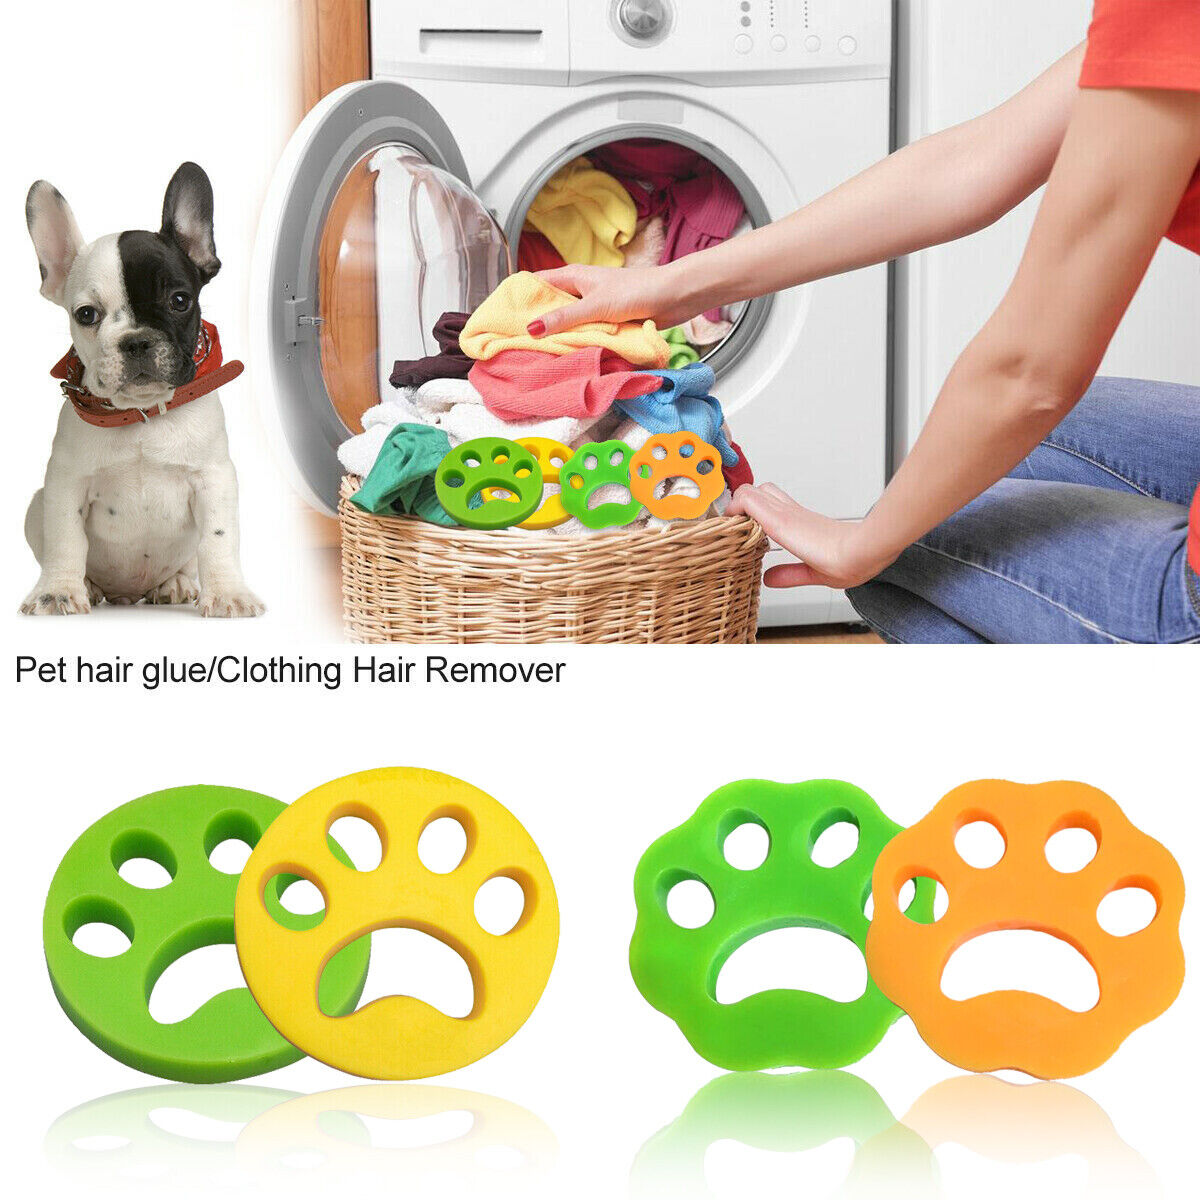 Details About 2 Pack Furzer Pet Dog Cat Hair Remover For Washing Laundry Washer Dryer Hot